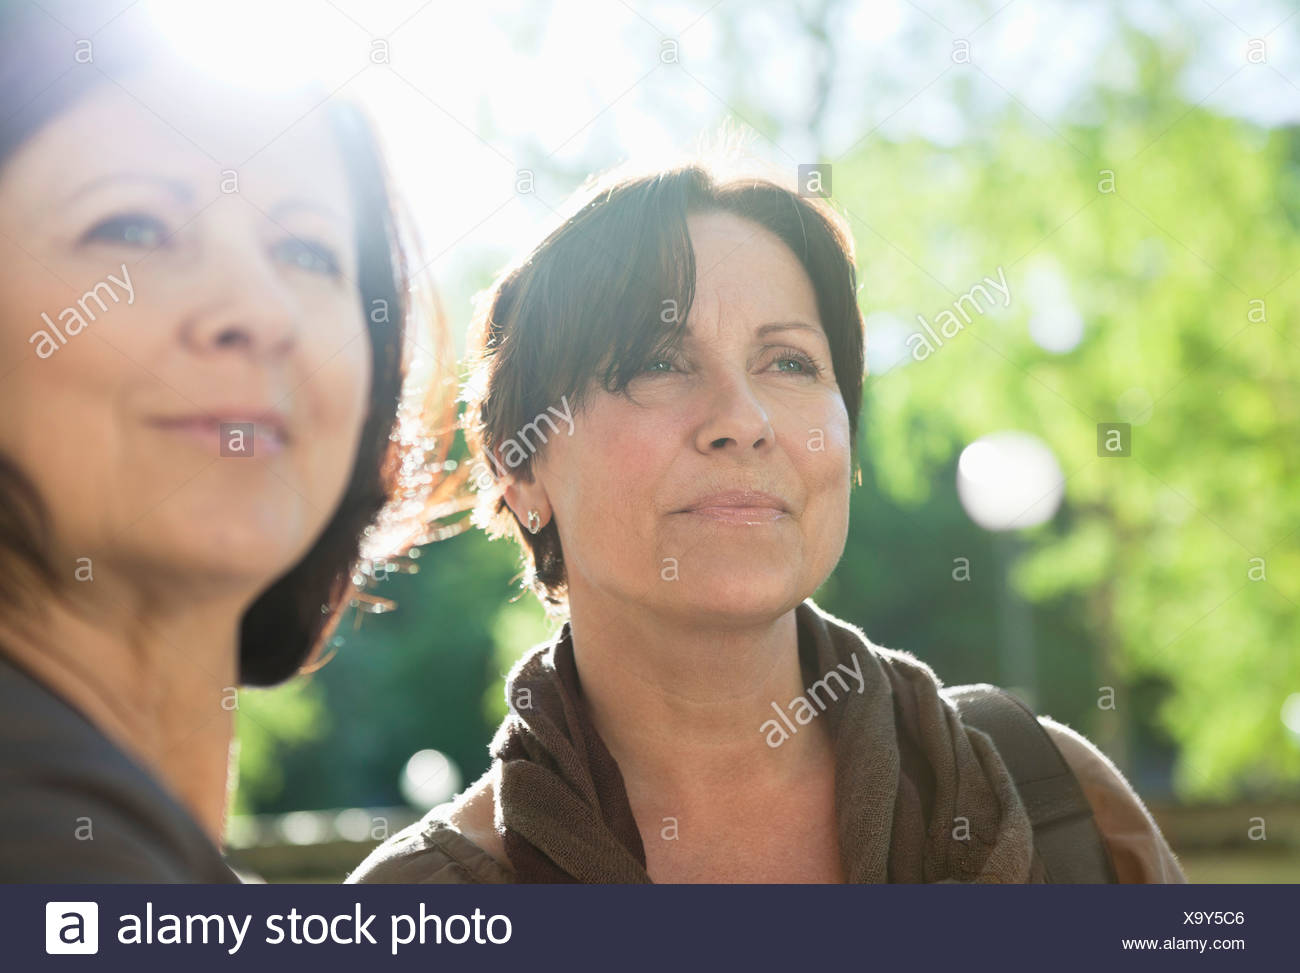 Close-up of smiling woman looking at something - Stock Image